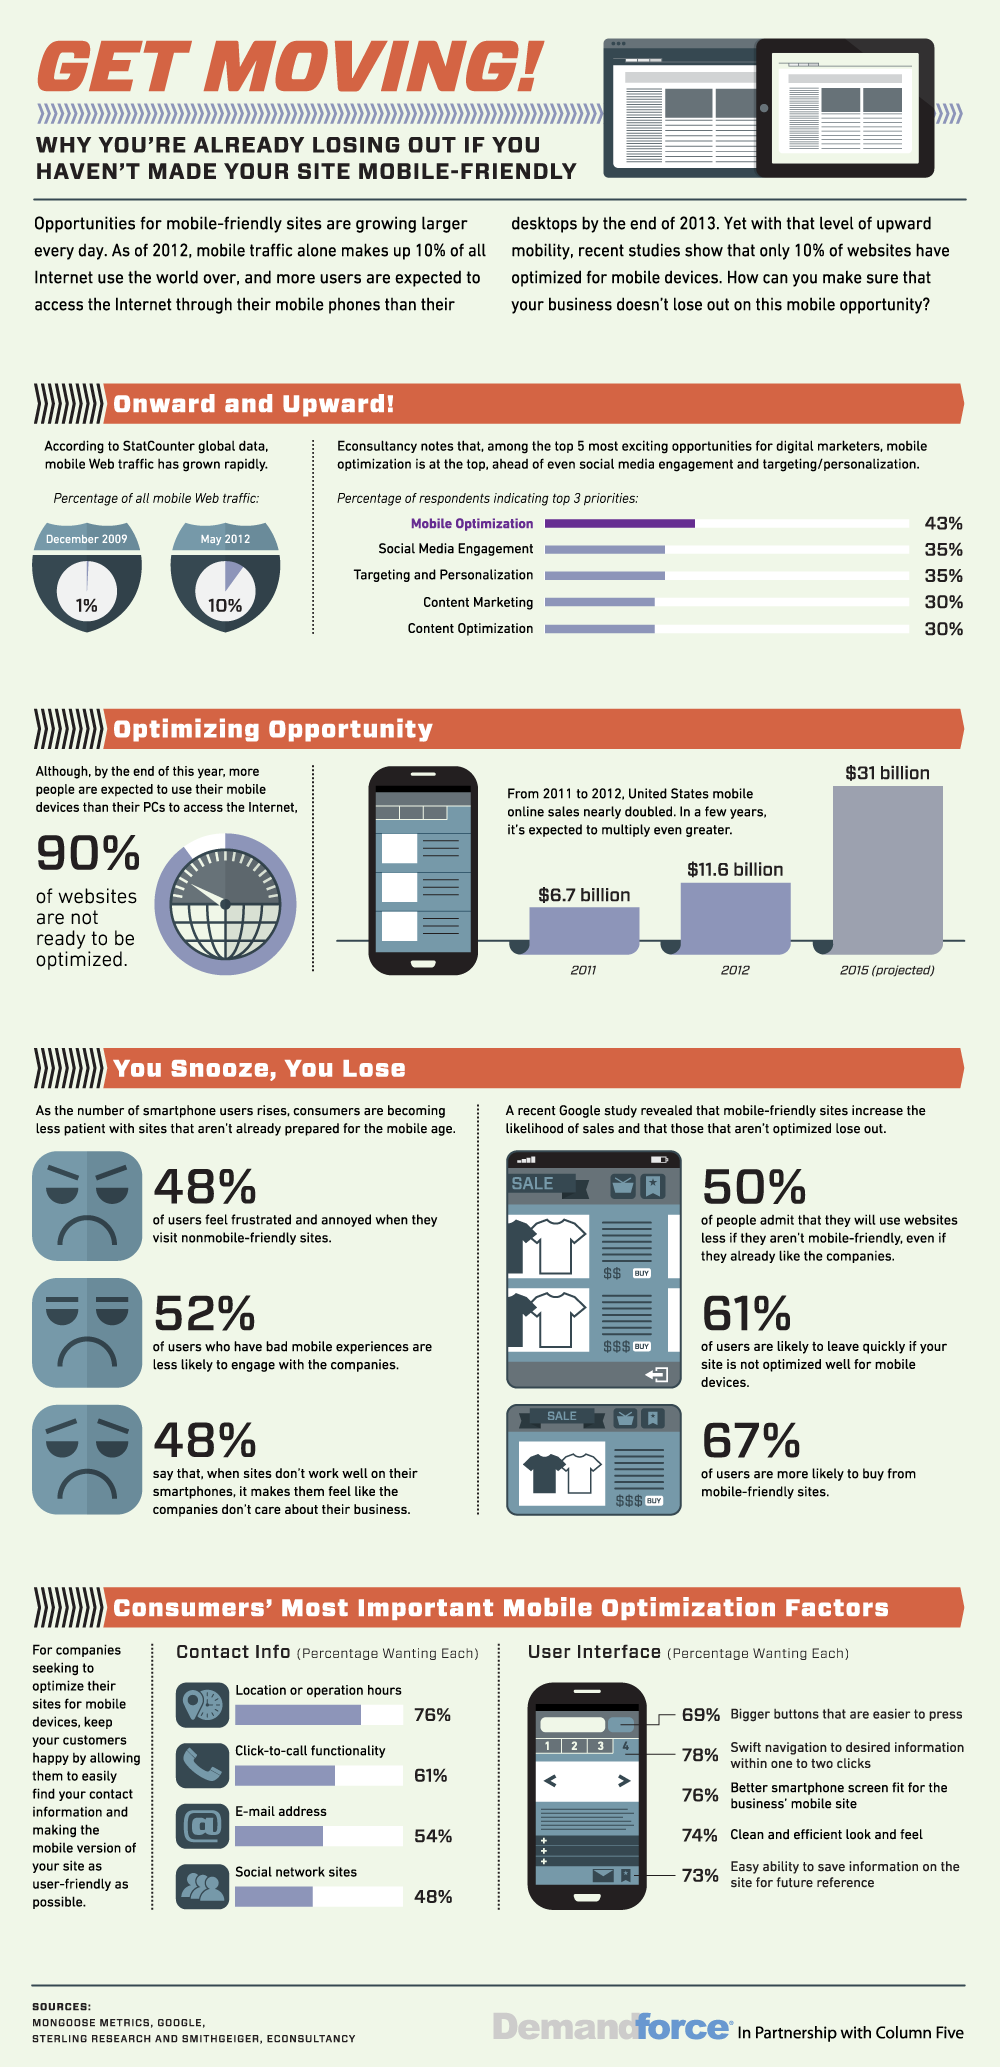 Importance of Making Your Site Mobile-Friendly